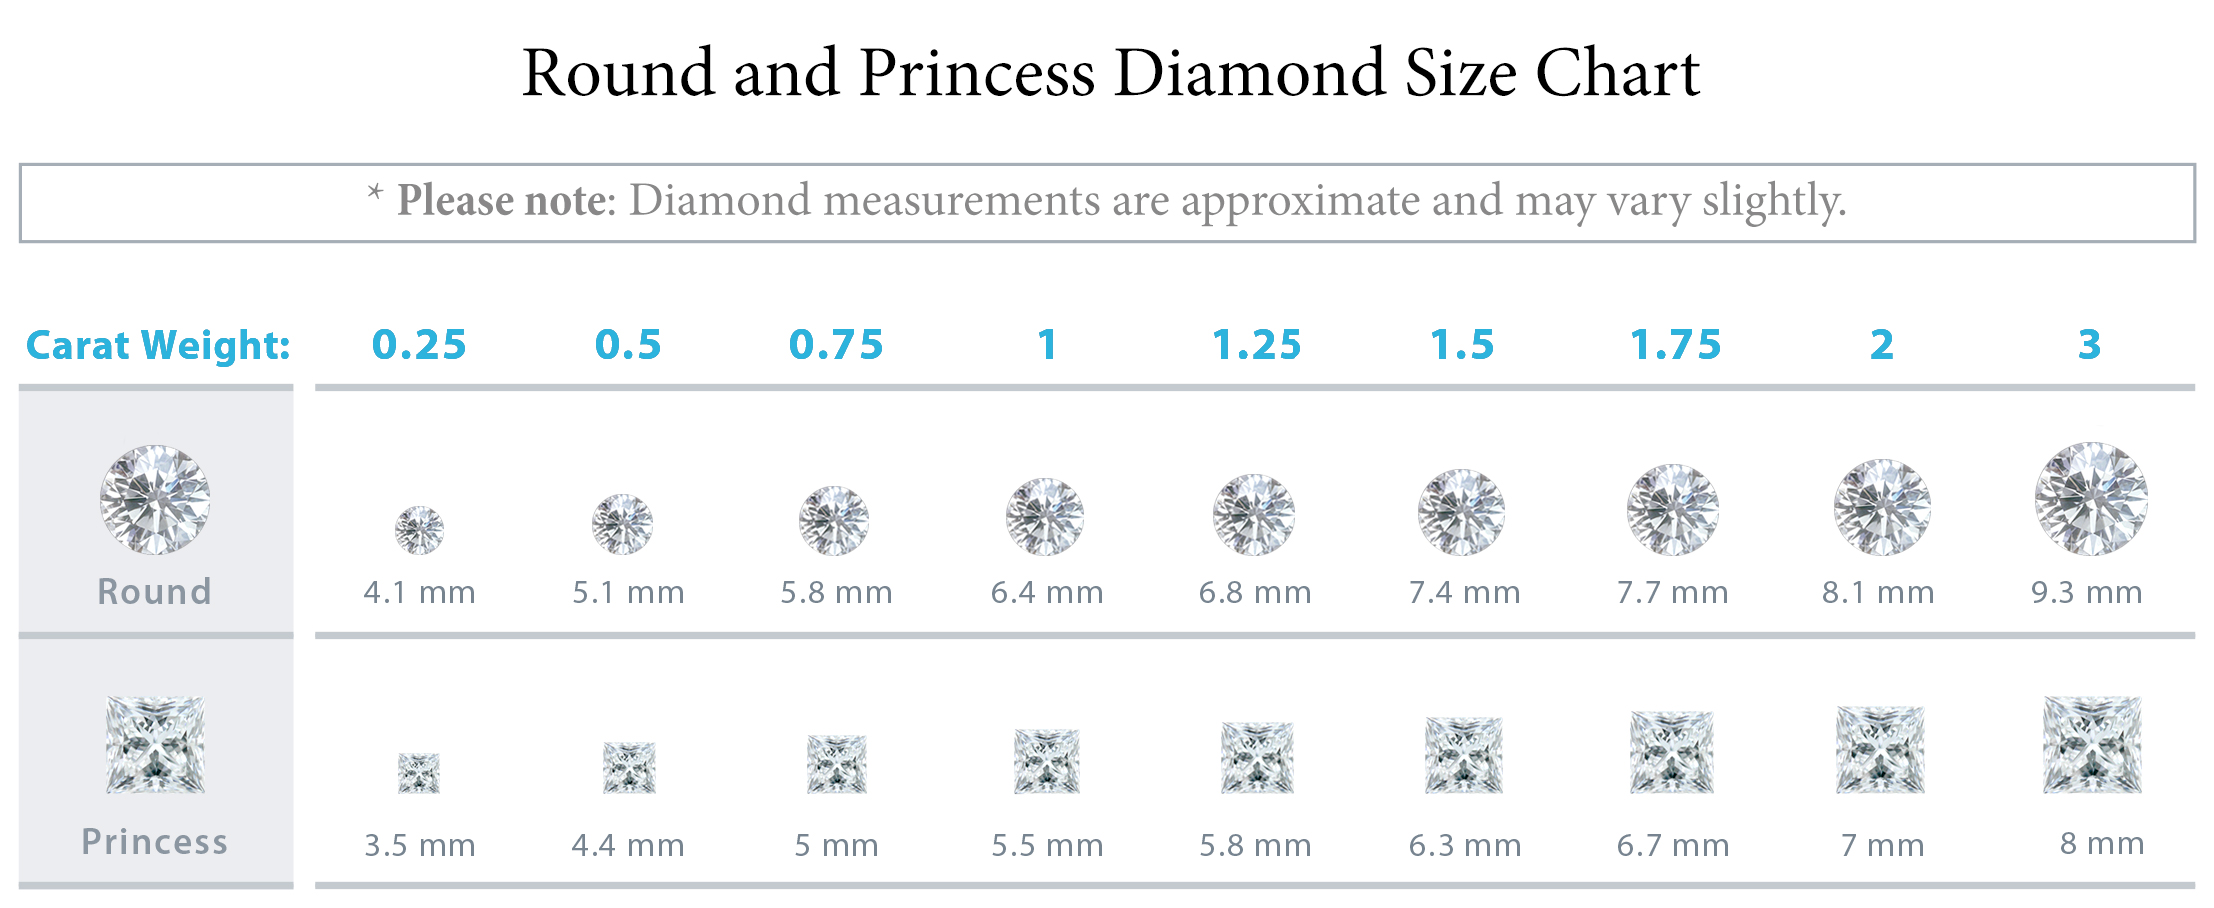 in of diamonds lighting blue revisited grading fluorescent over base issues data diamond pricescope typical journal flourescent photographed color artificial